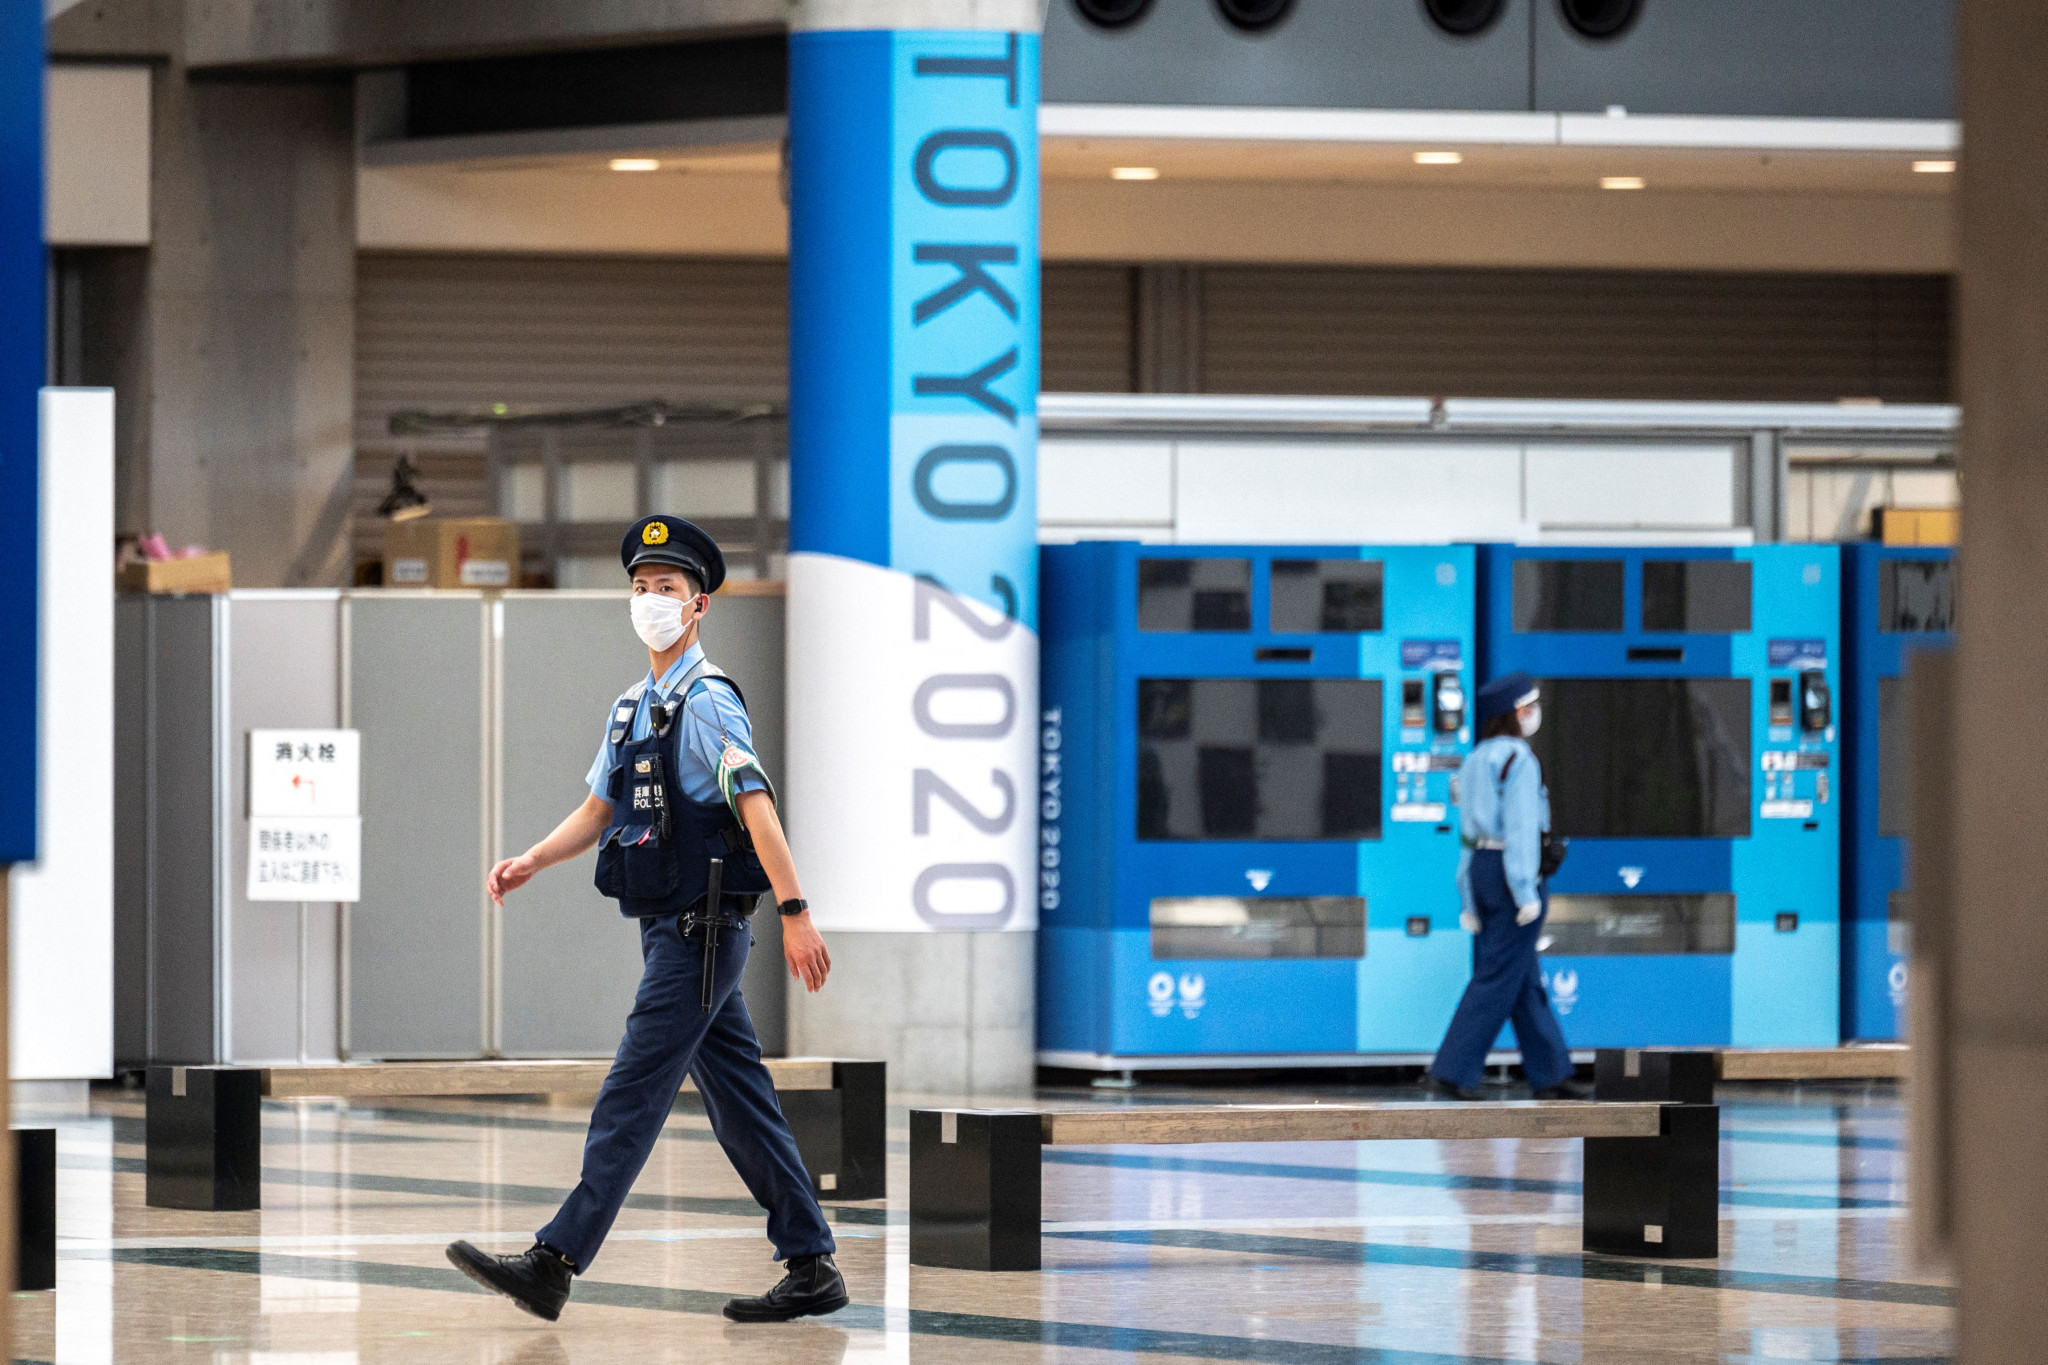 Tokyo 2020 stepping up surveillance on overseas attendees as city records highest COVID-19 rate since January